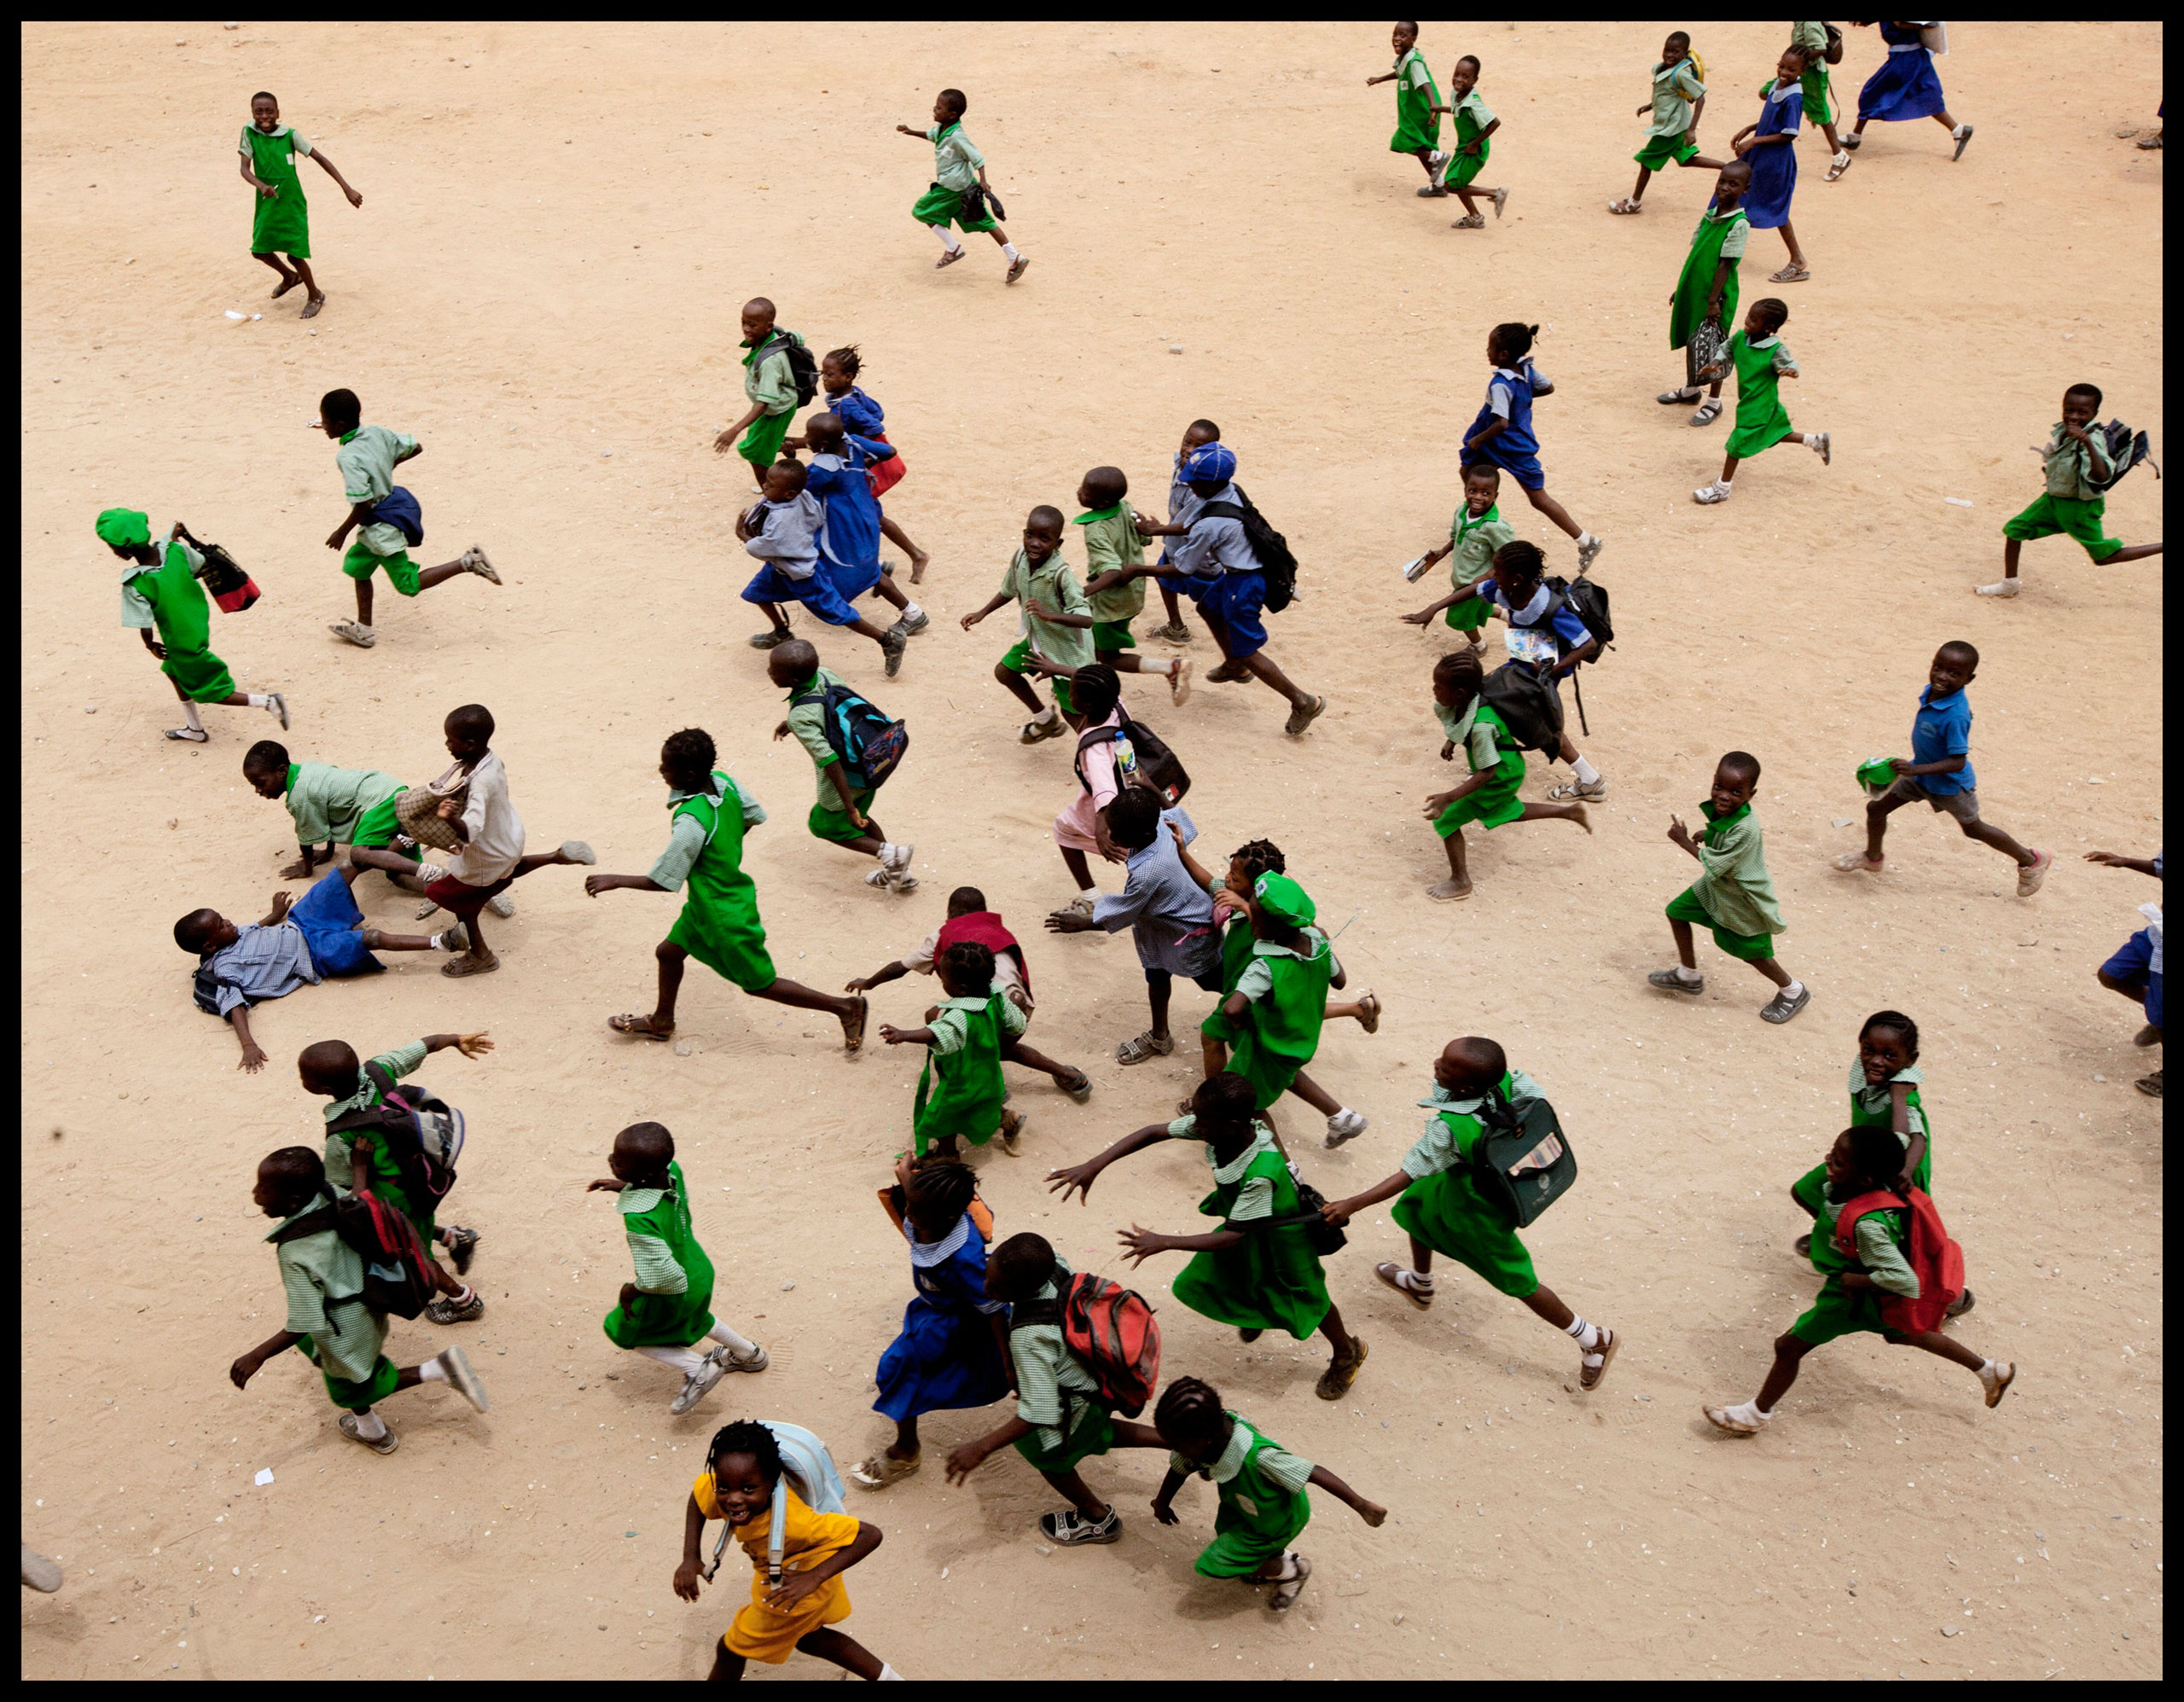 Children run at a school in Lagos. More African kids are finishing primary school, but that's just the beginning